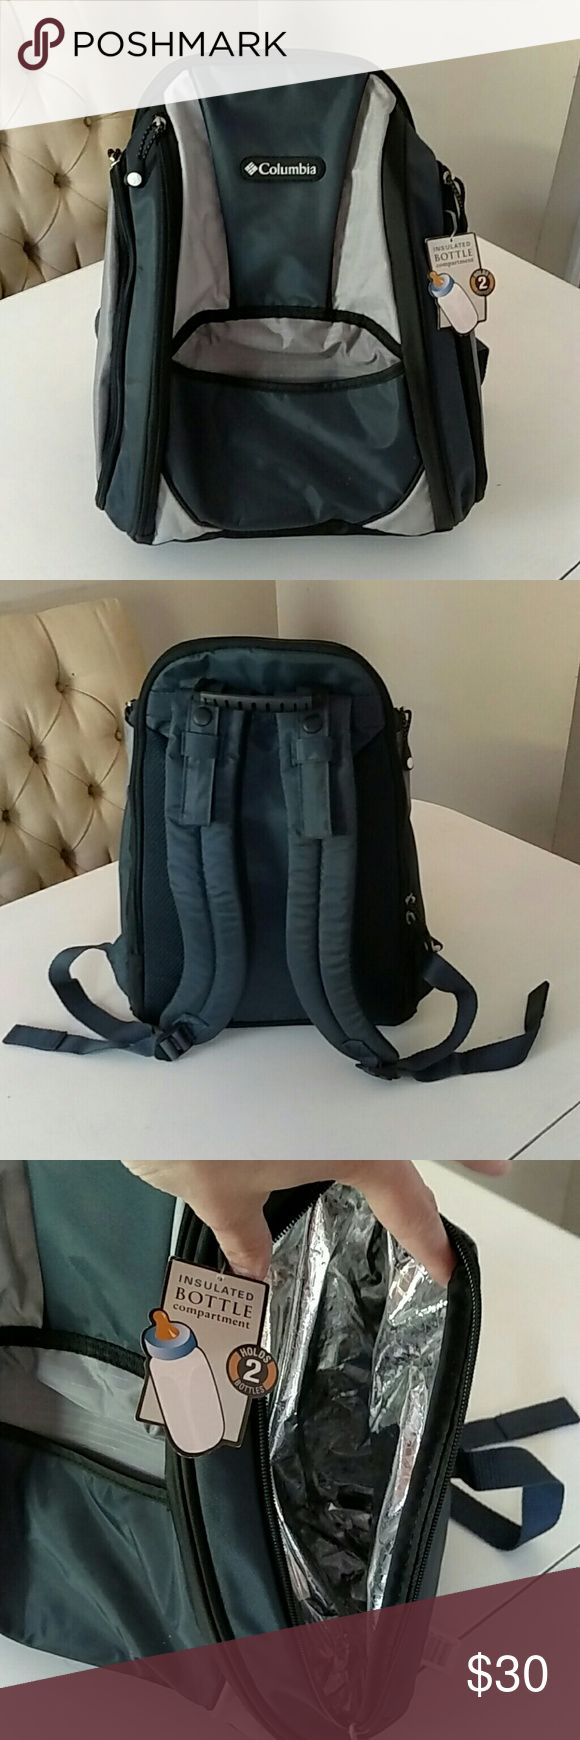 Columbia Trekster Backpack Diaper Bag In New condition, with some tags on it. Navy blue, silver, and black in color. Many compartments. Insulated bottle compartment. Changing pad. Rubber handle. Columbia Bags Baby Bags